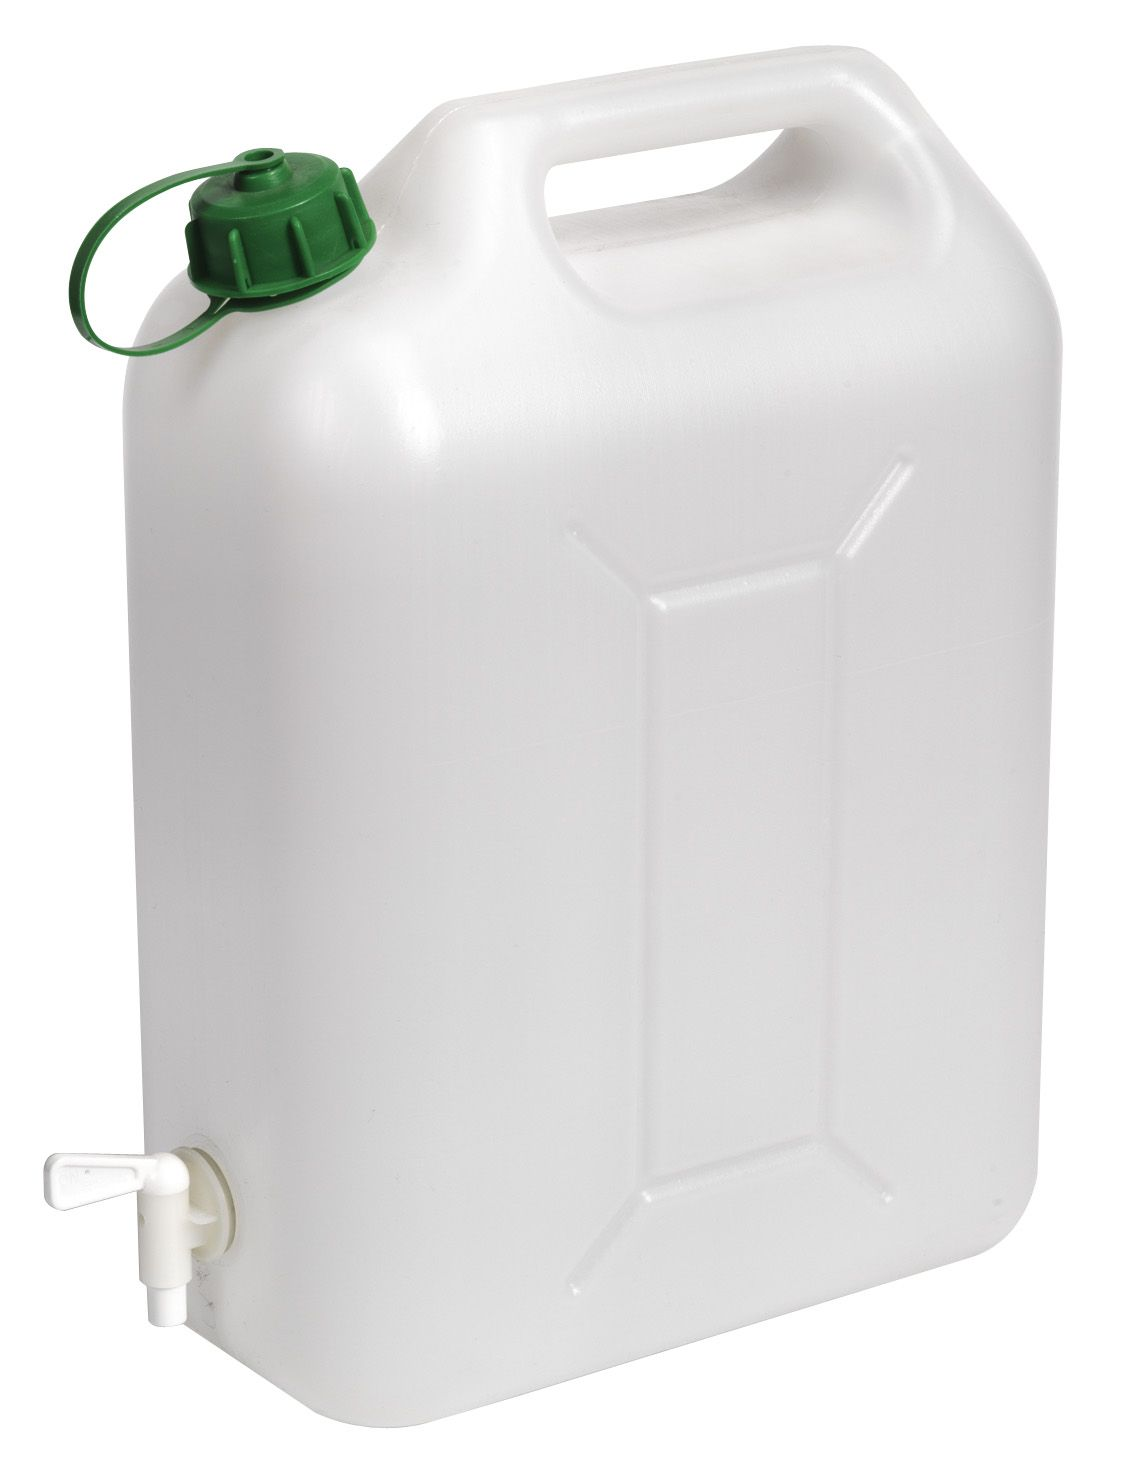 Sealey Fluid Container with Tap 10L